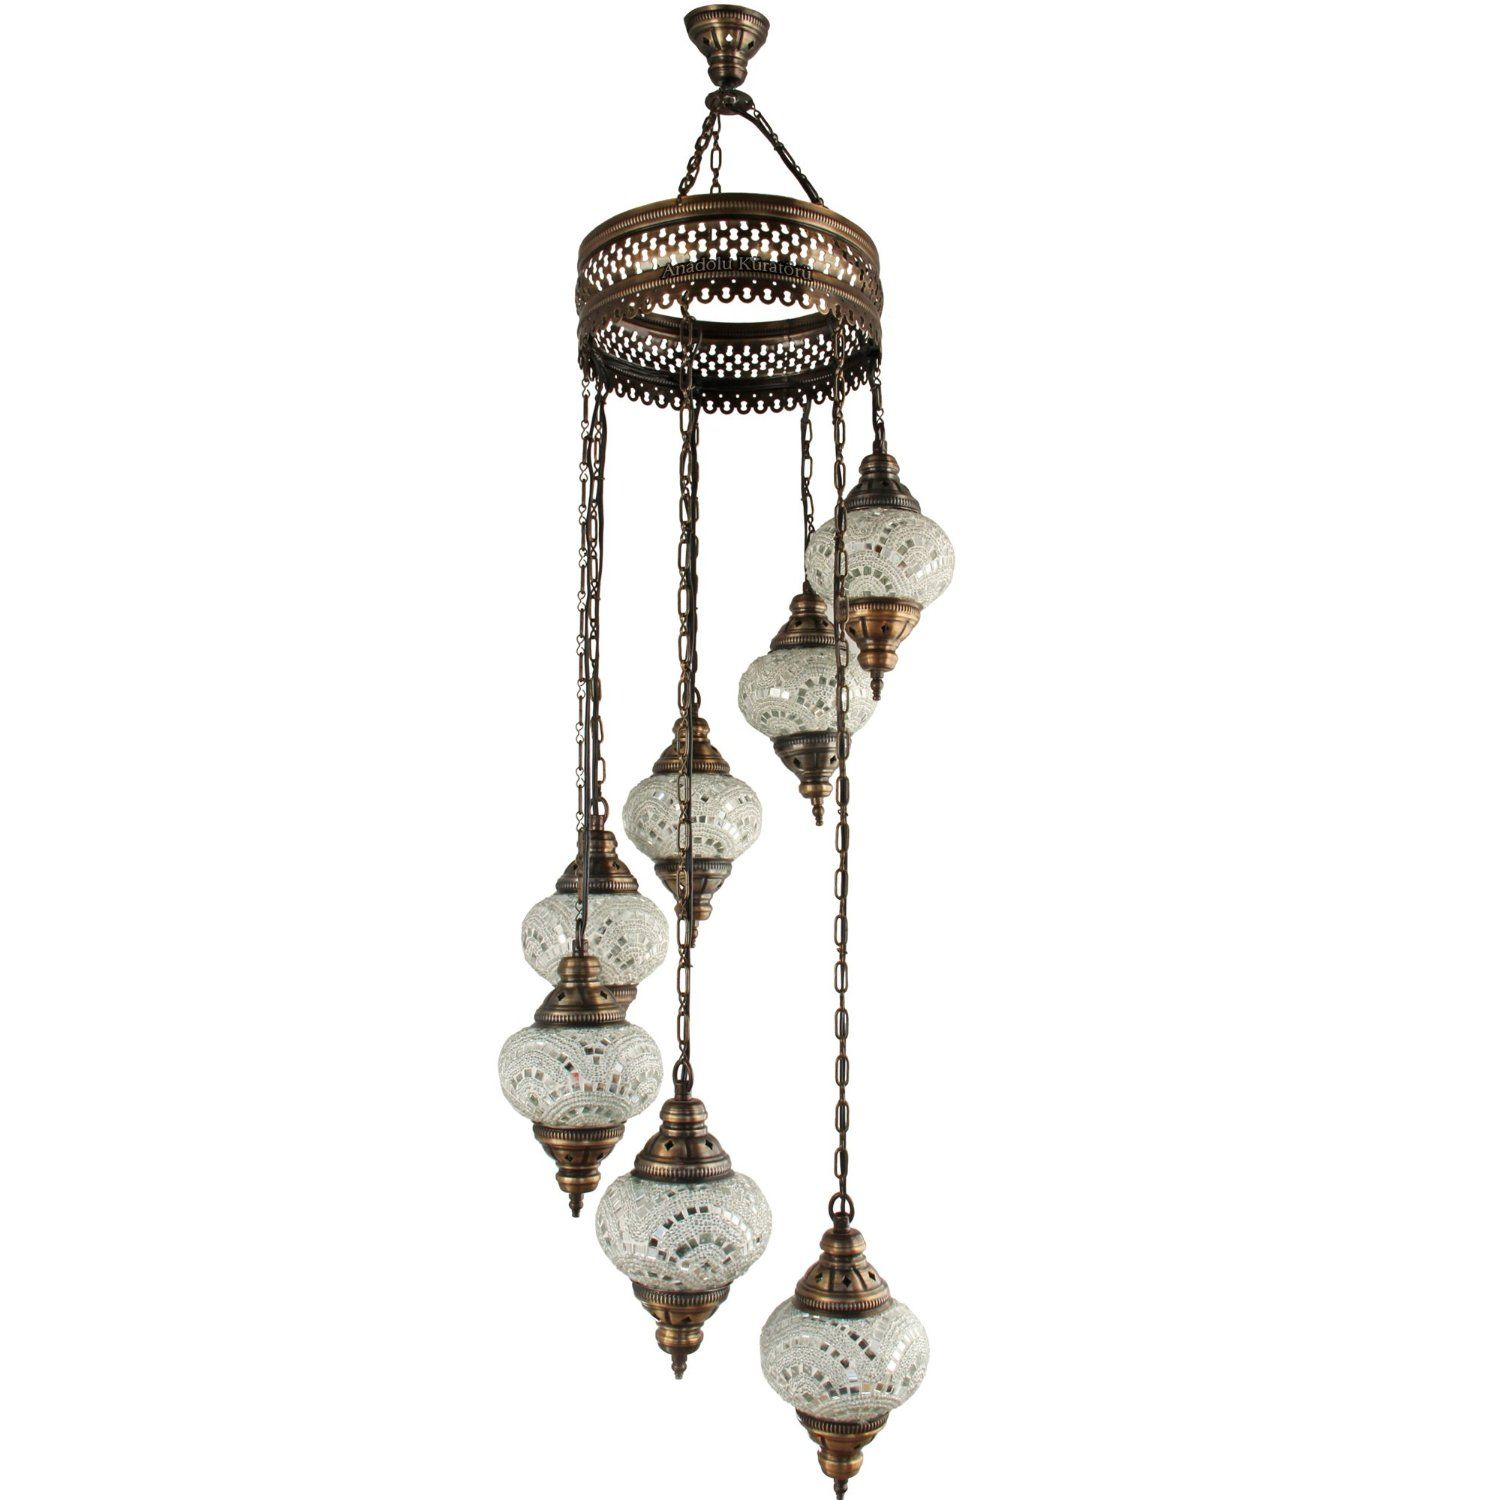 Chandelier ceiling lights turkish lamps hanging mosaic lights chandelier ceiling lights turkish lamps hanging mosaic lights pendant white glass lantern ceiling lightshanging lightsmoroccan arubaitofo Image collections